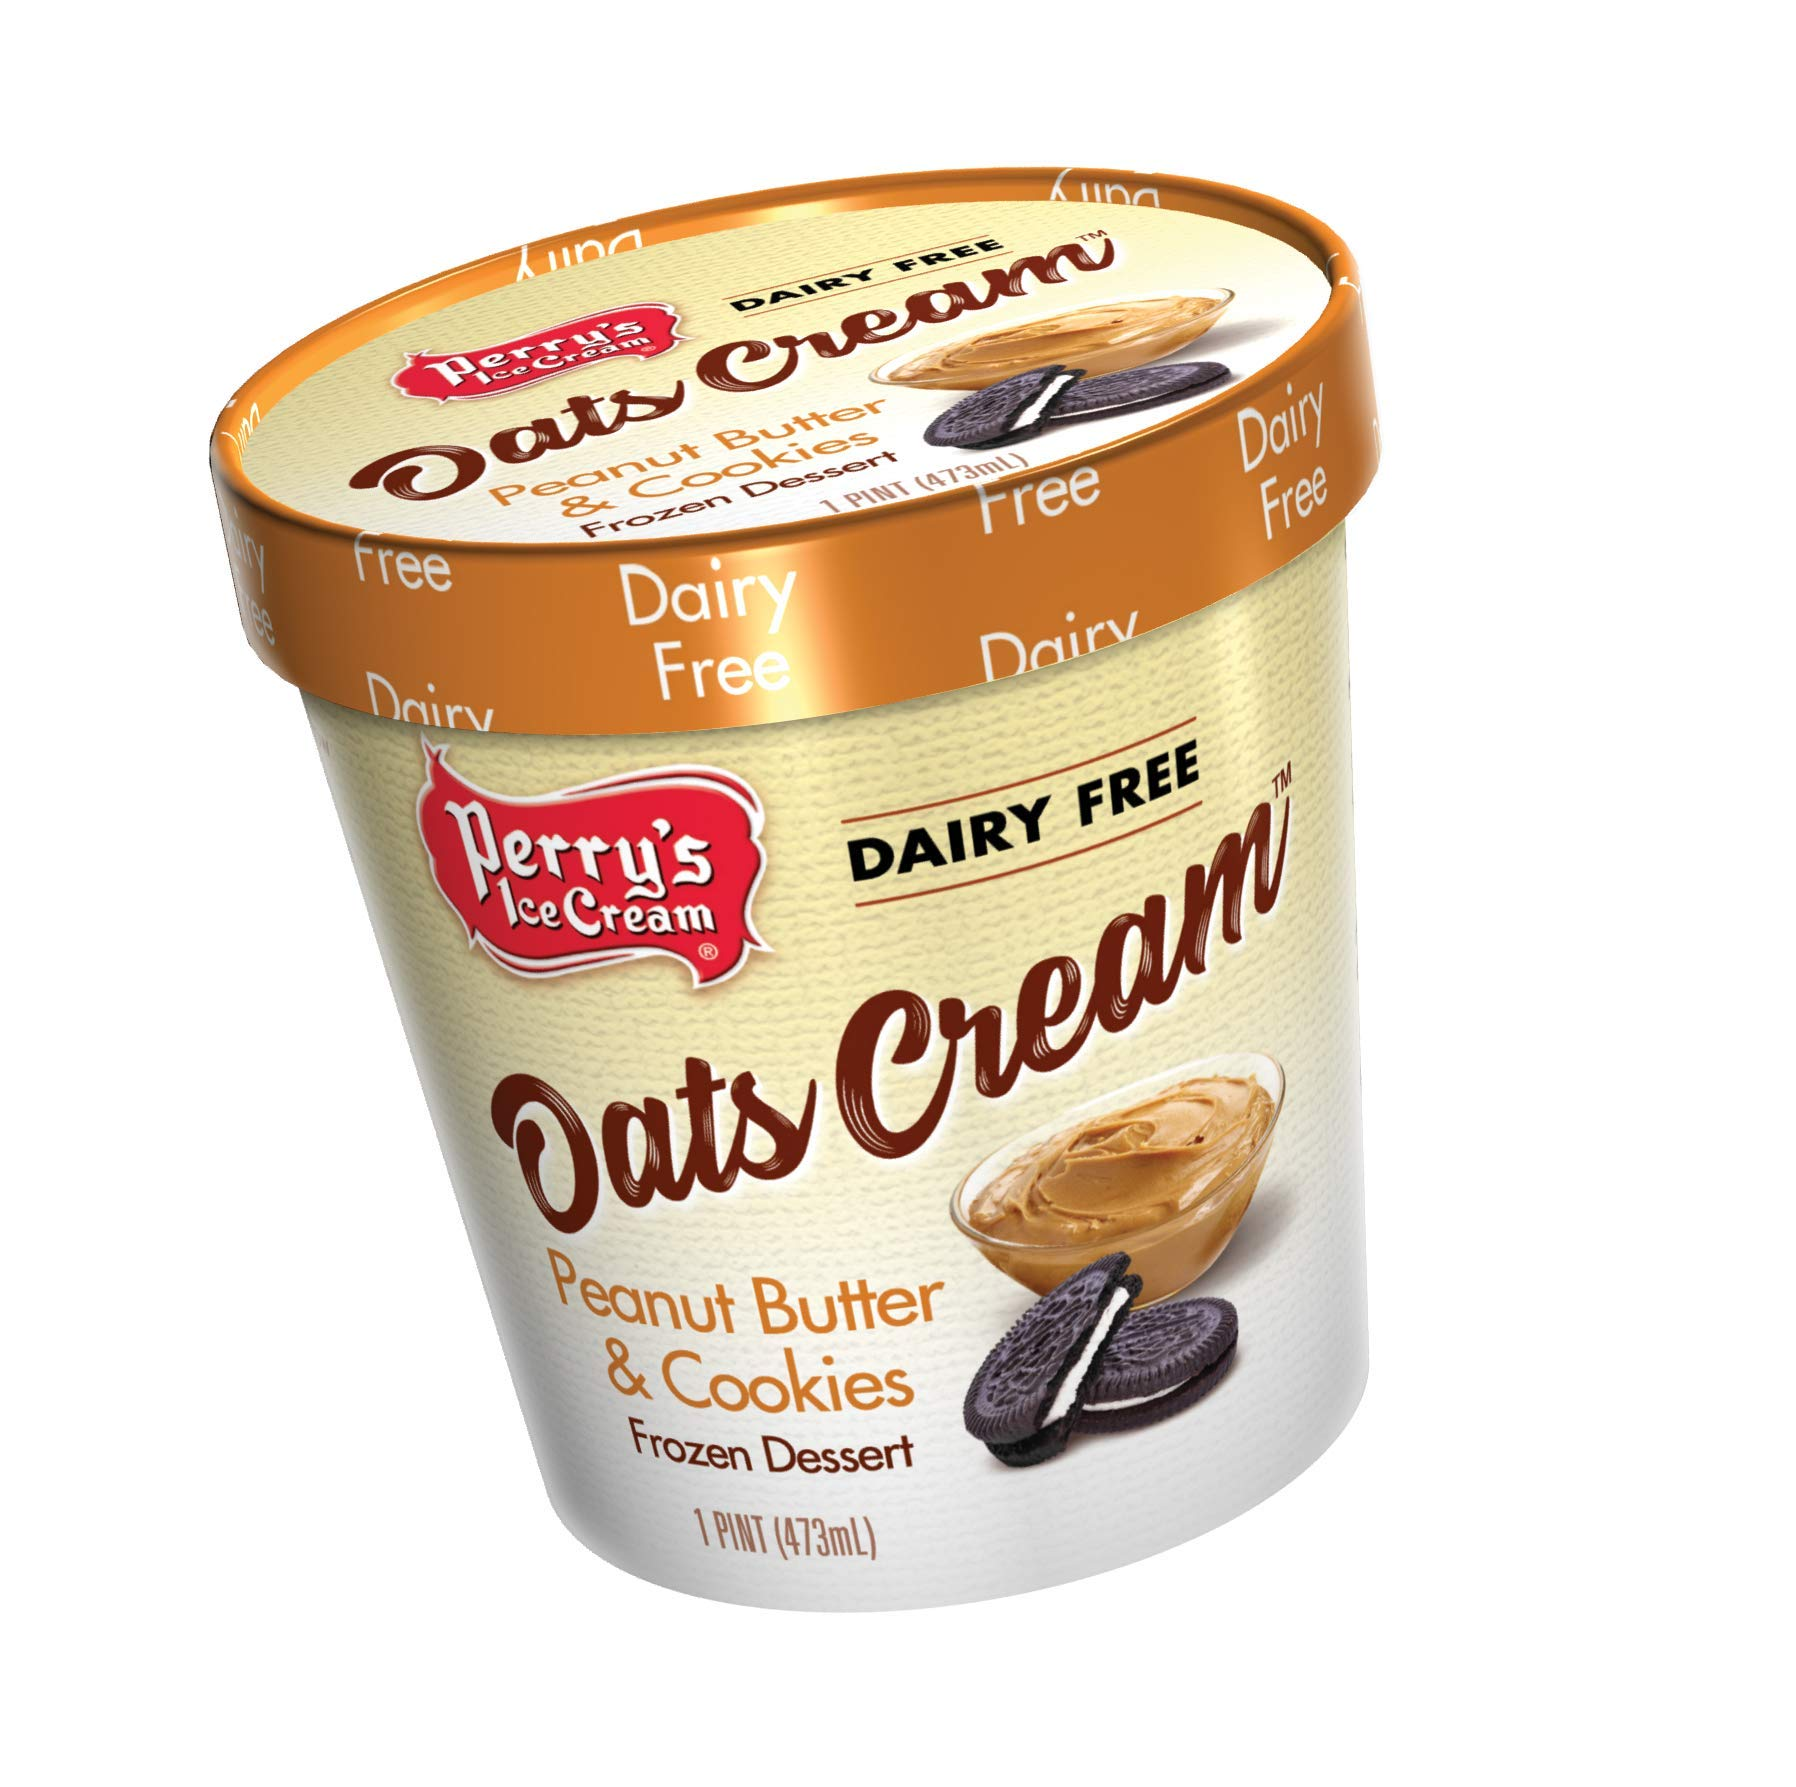 Perry's Ice Cream, Pint, Oats Cream, Peanut Butter & Cookies - Pack of 8 by Perry's Ice Cream (Image #1)